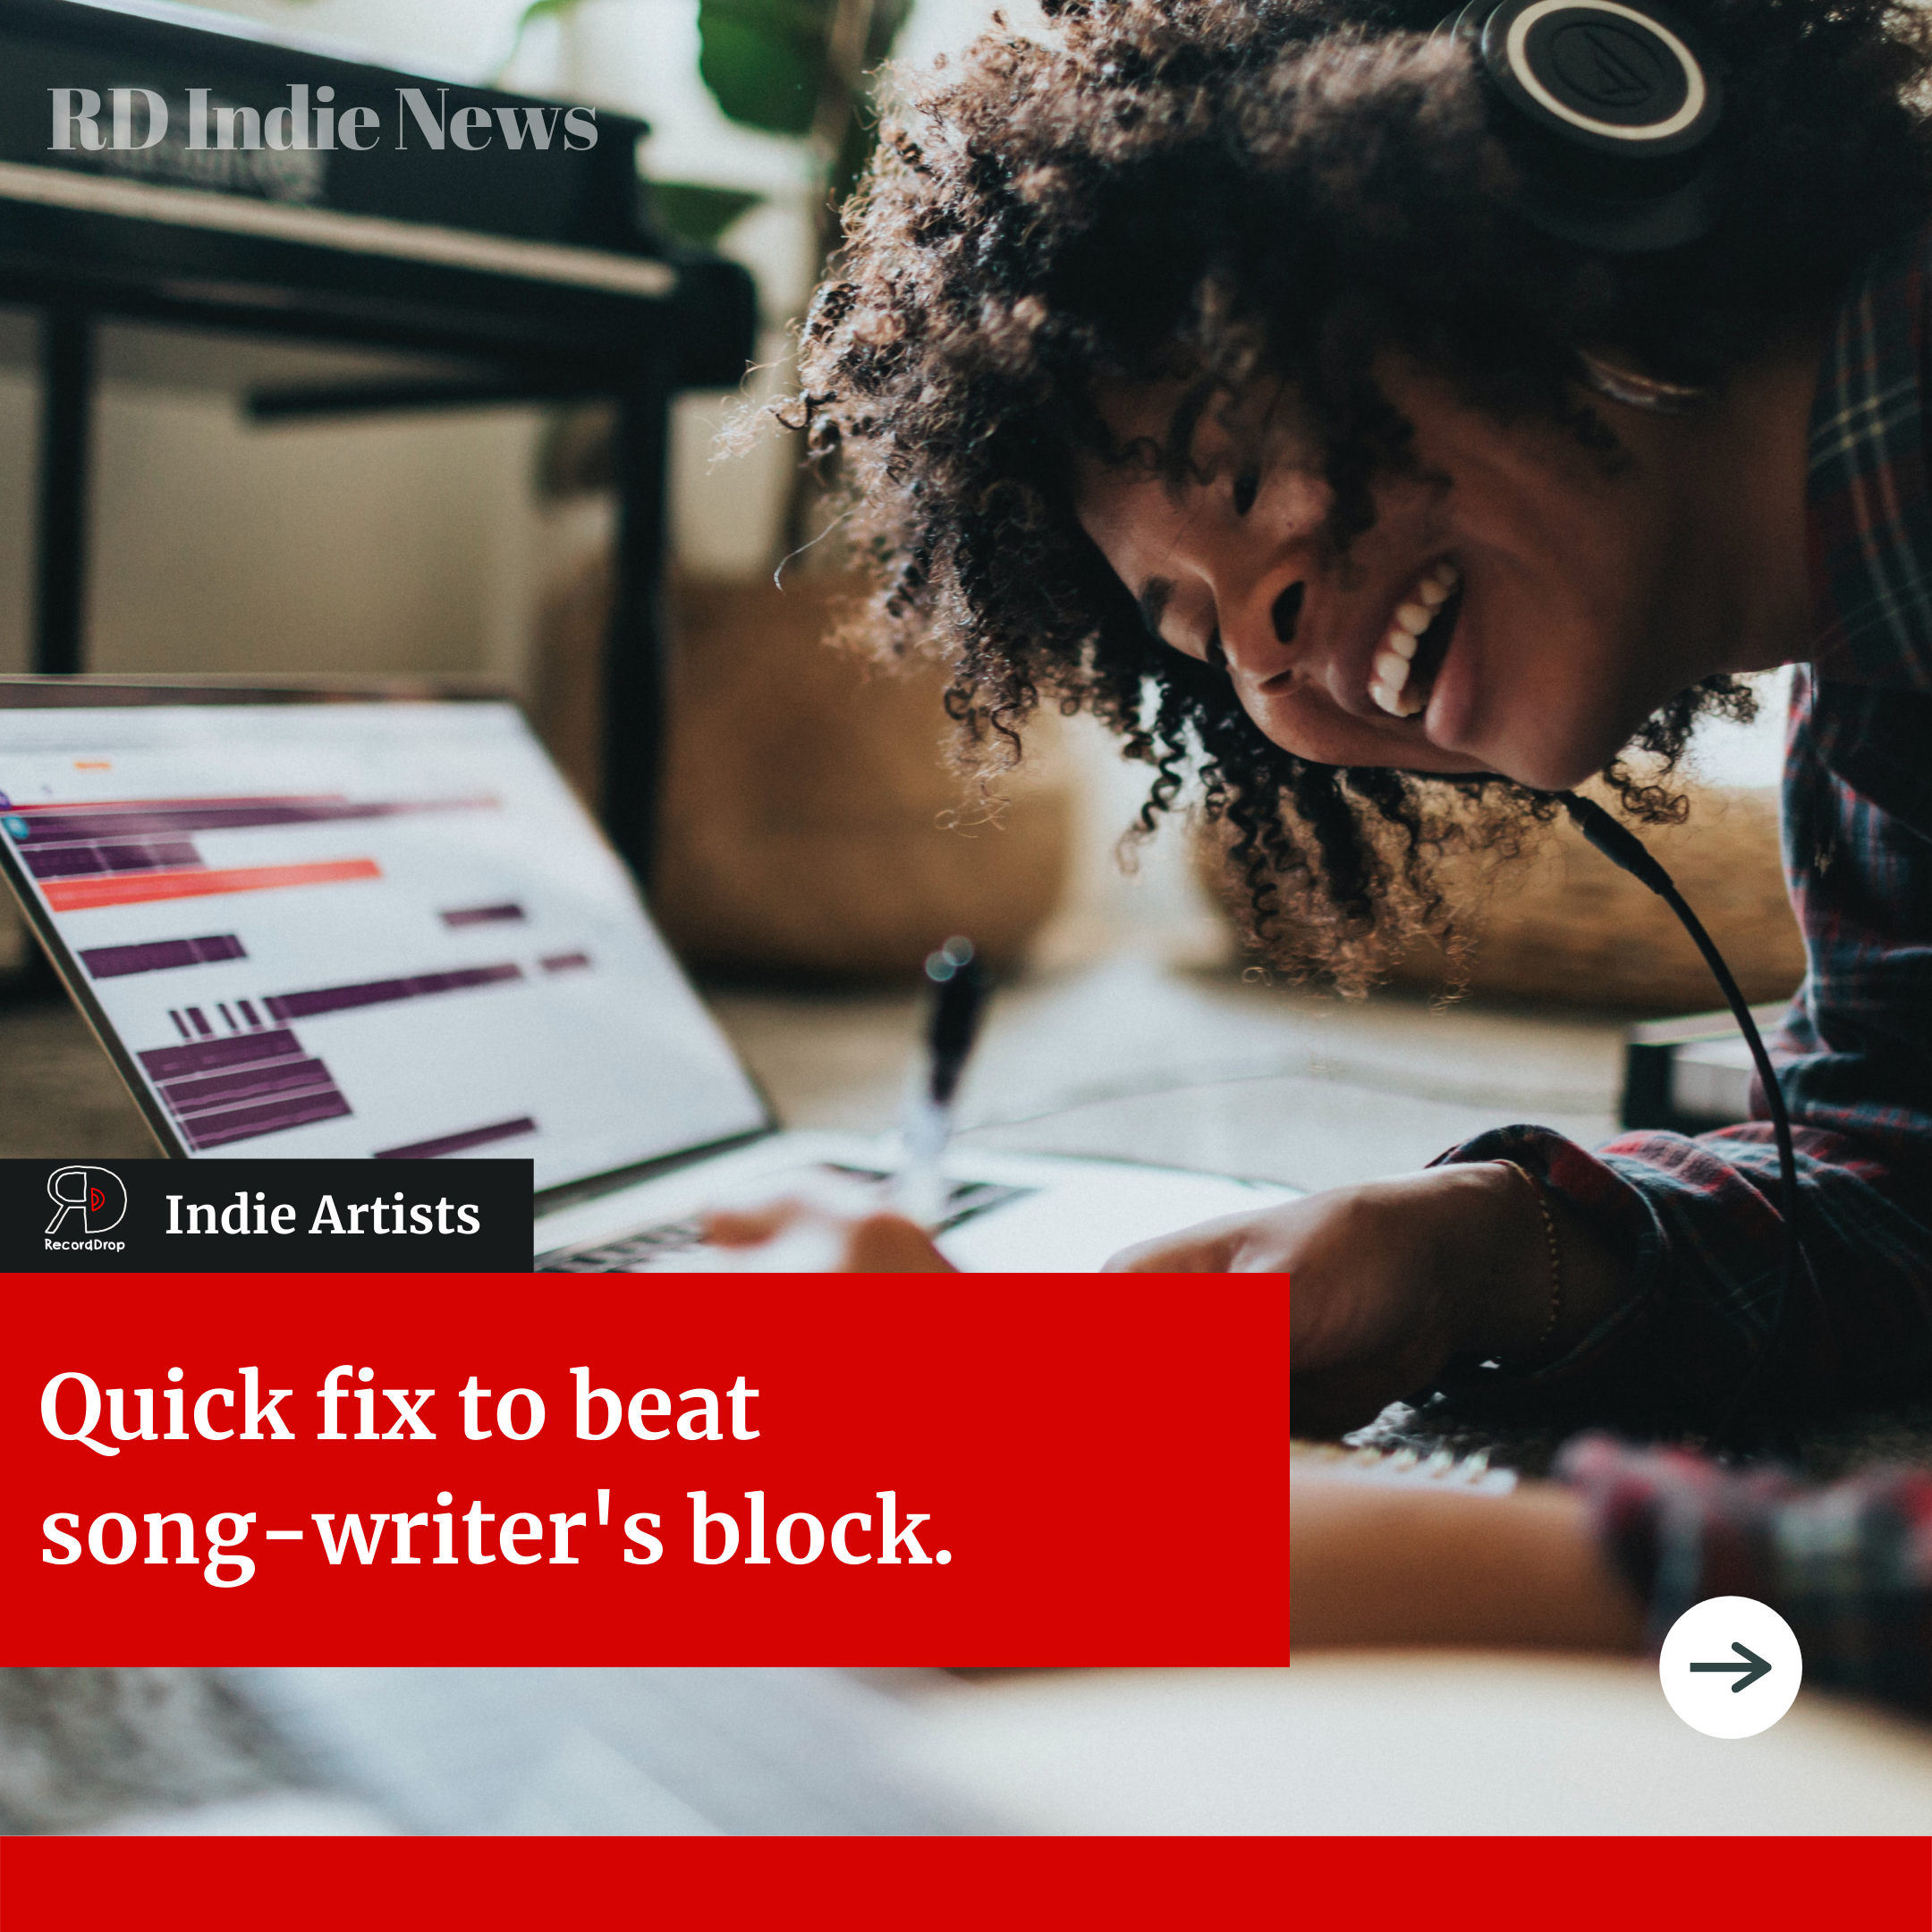 Losing motivation to write new music? How to get ideas flowing.